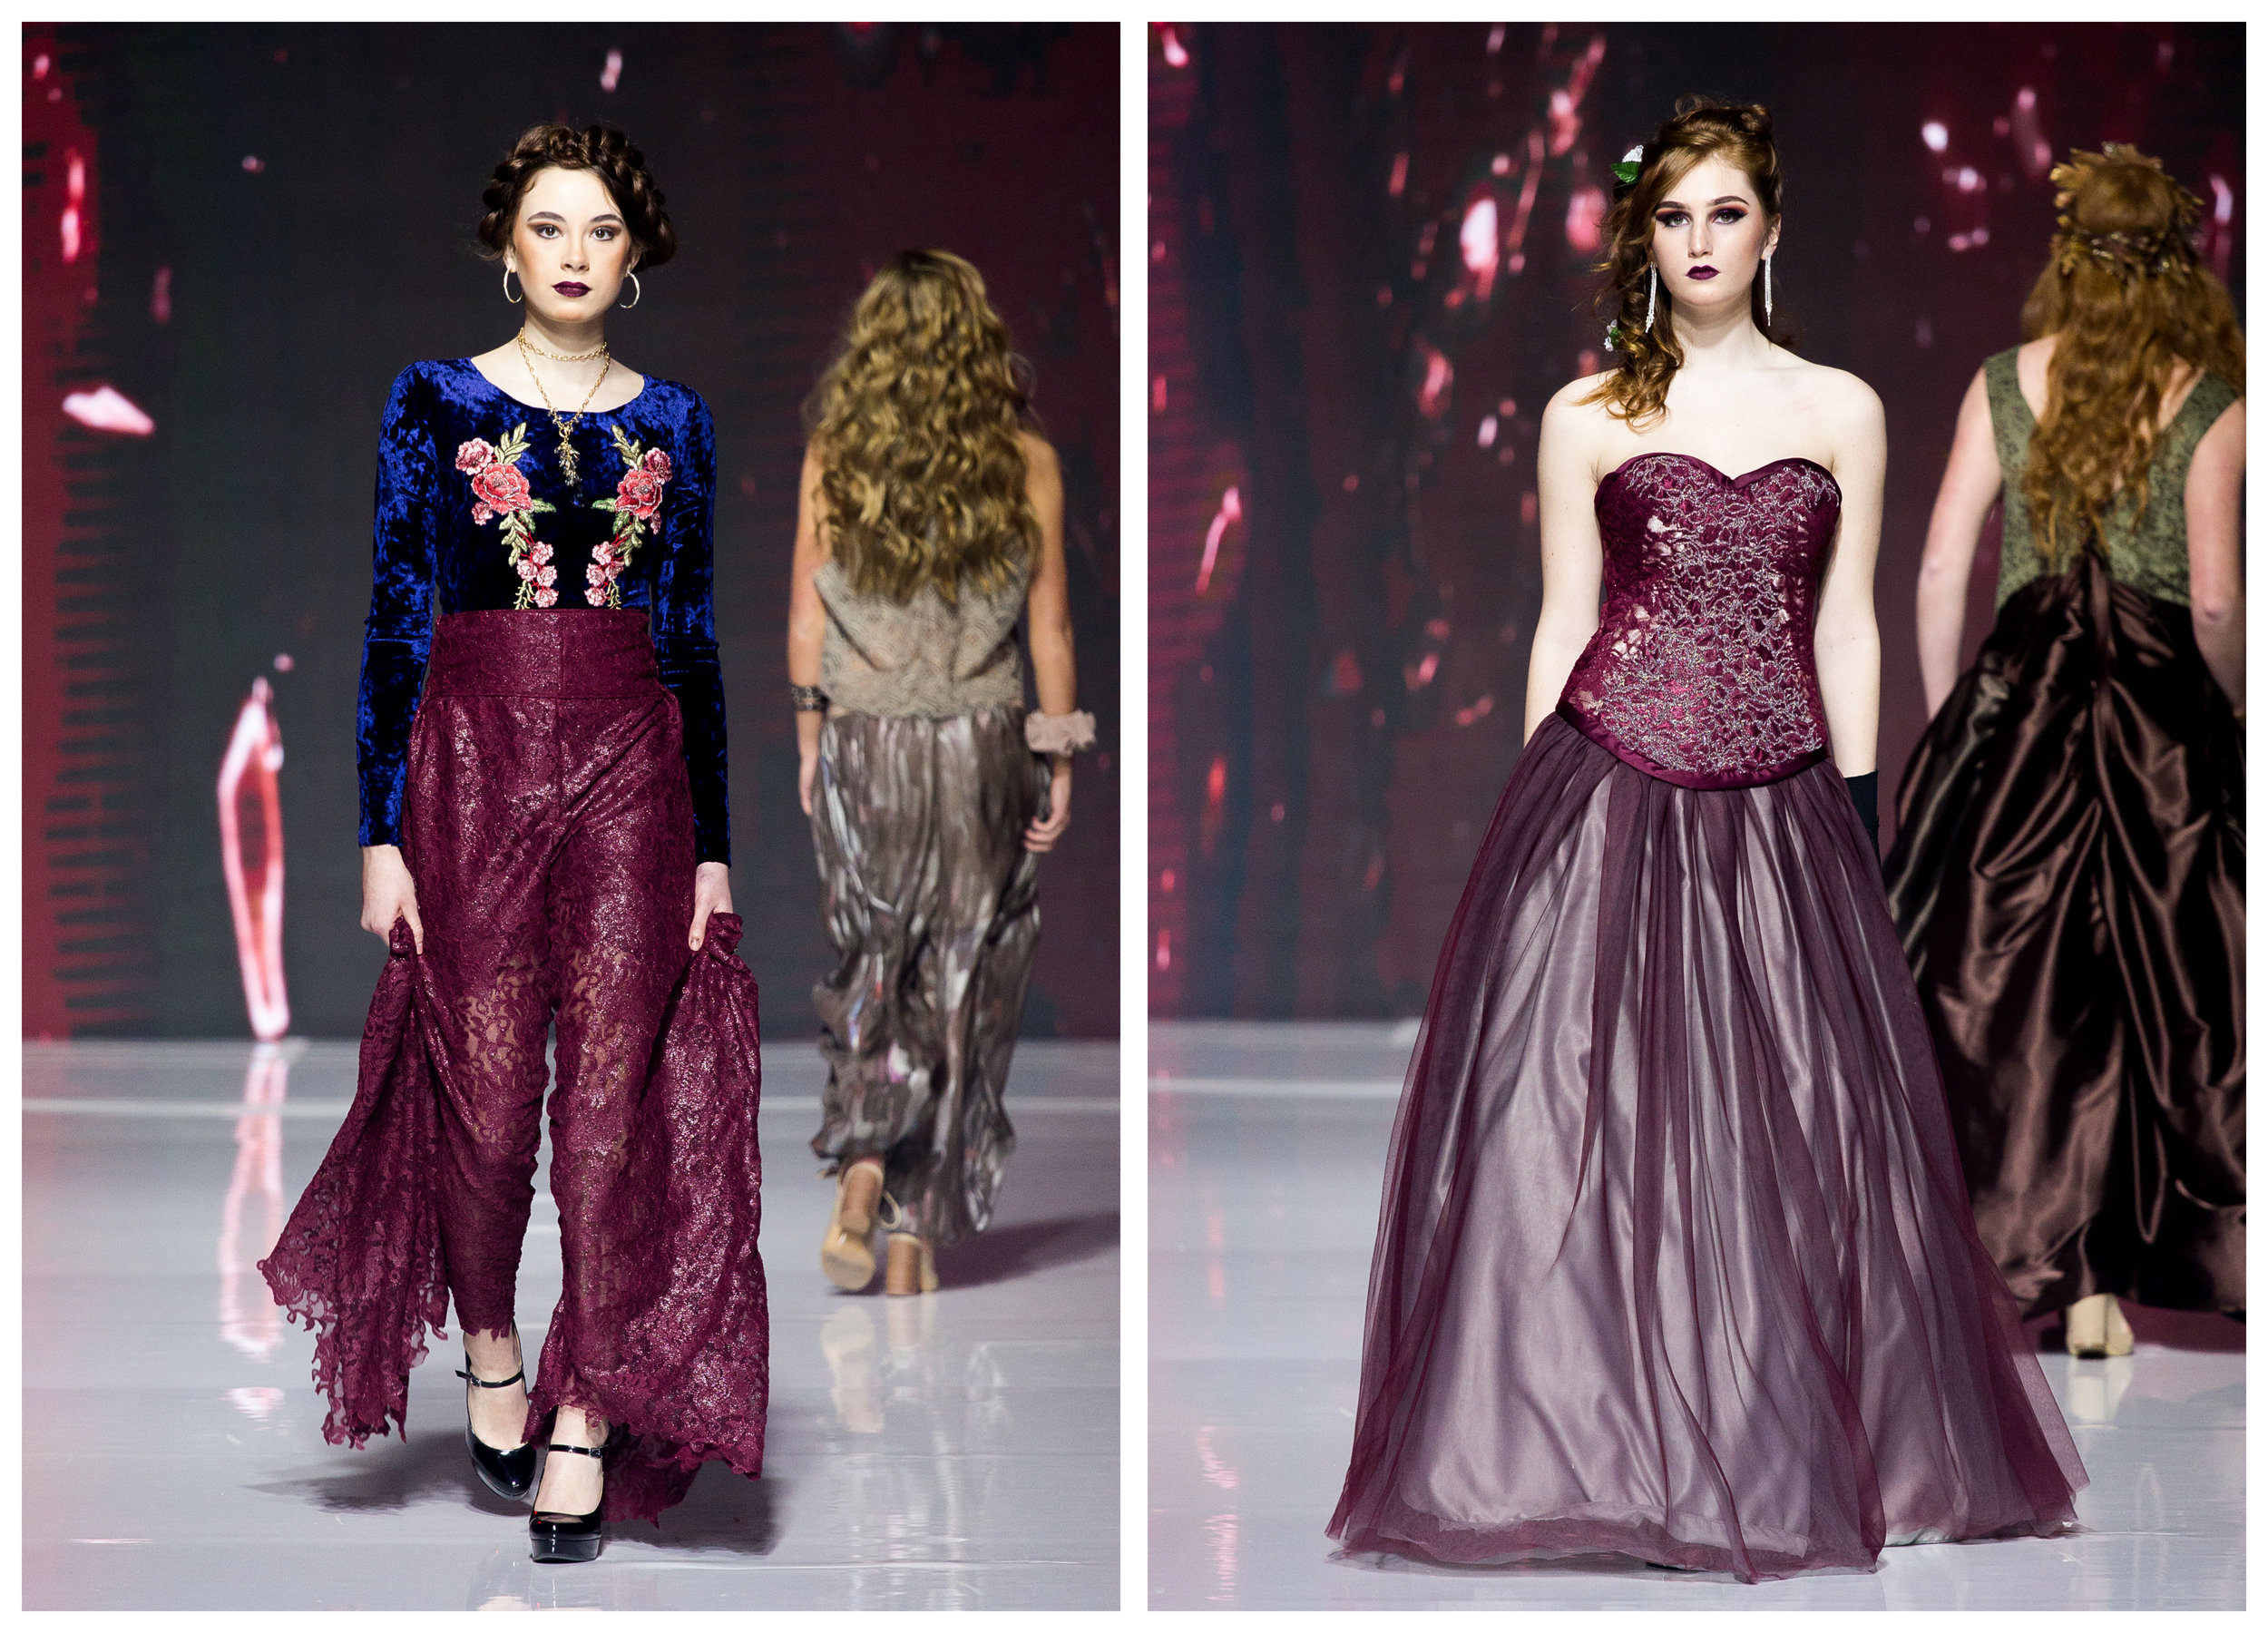 LEFT: Velvet bodysuit with burgundy lace pants. Pants have a train on the ends of each leg, and the flower appliques on the bodysuit are hand beaded. RIGHT: 2017 Prom Dress. All hand beaded, with a complete corset and a full ballgown skirt.